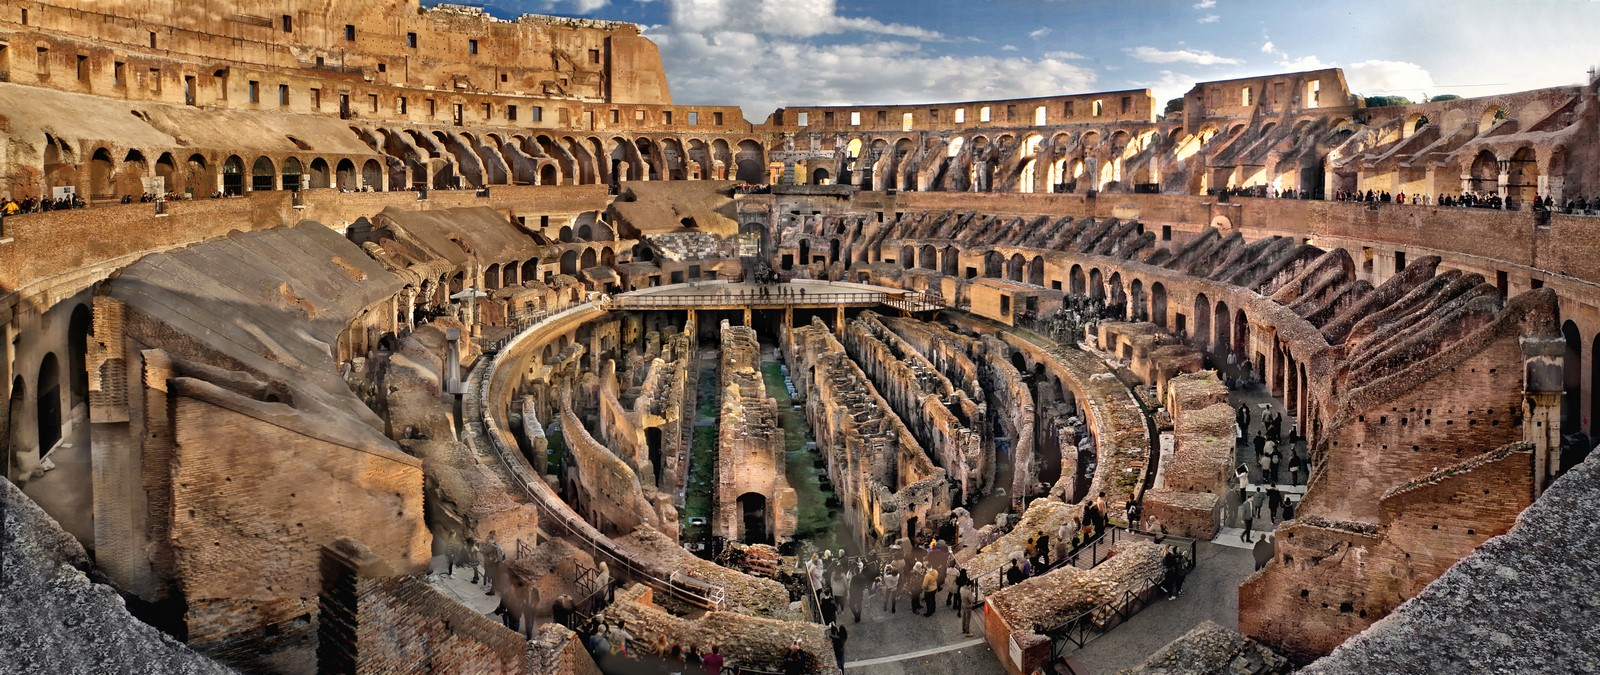 10 Things you did not know about The Colosseum - Rome - Sheet2